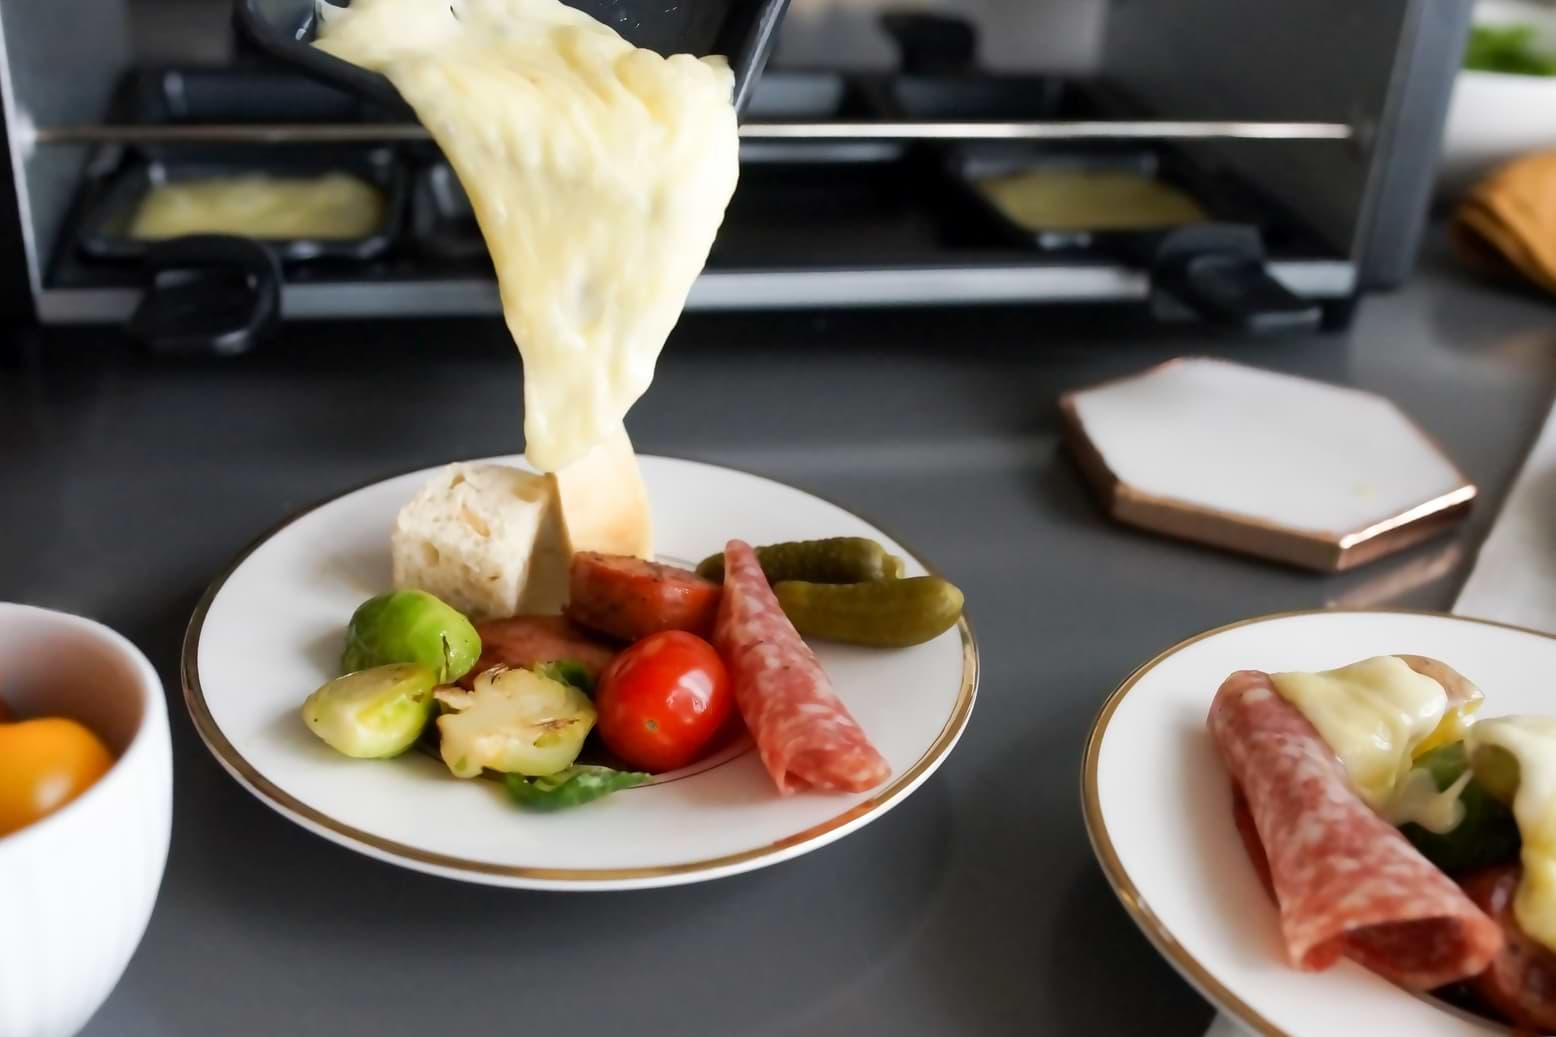 Co to jest raclette